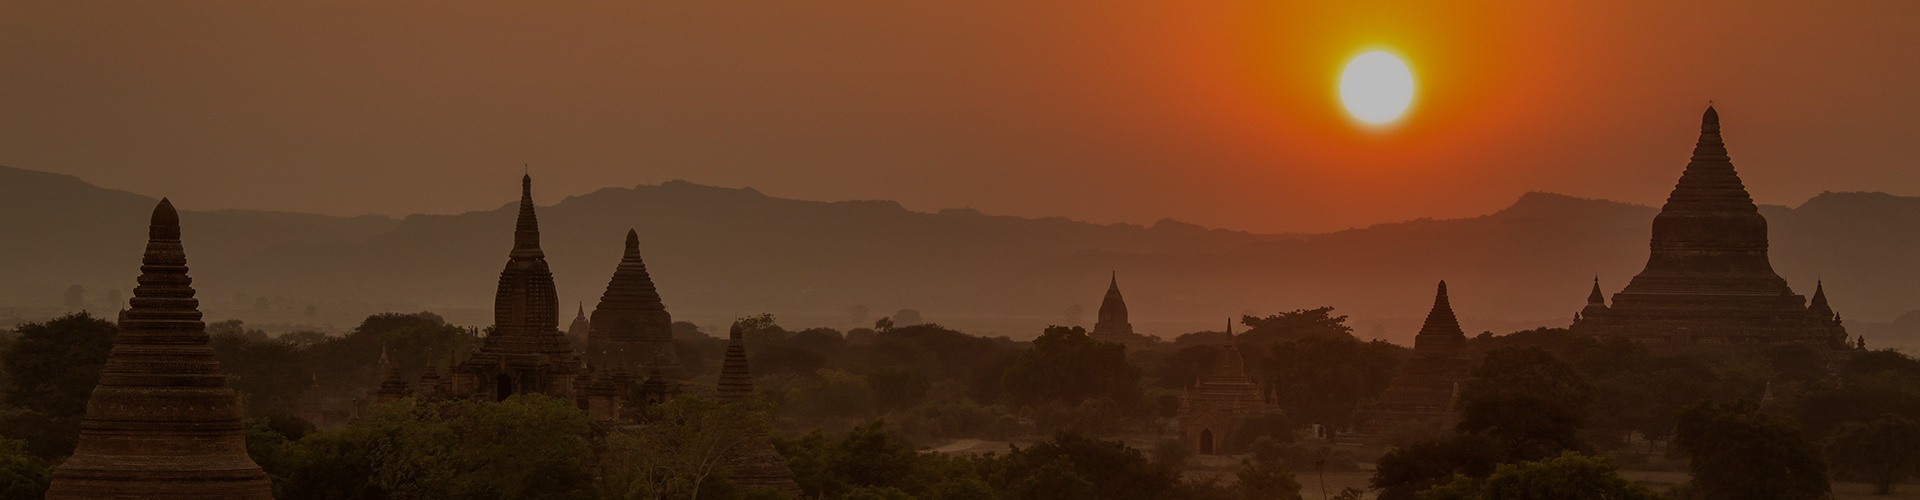 Landmark photograph of Myanmar